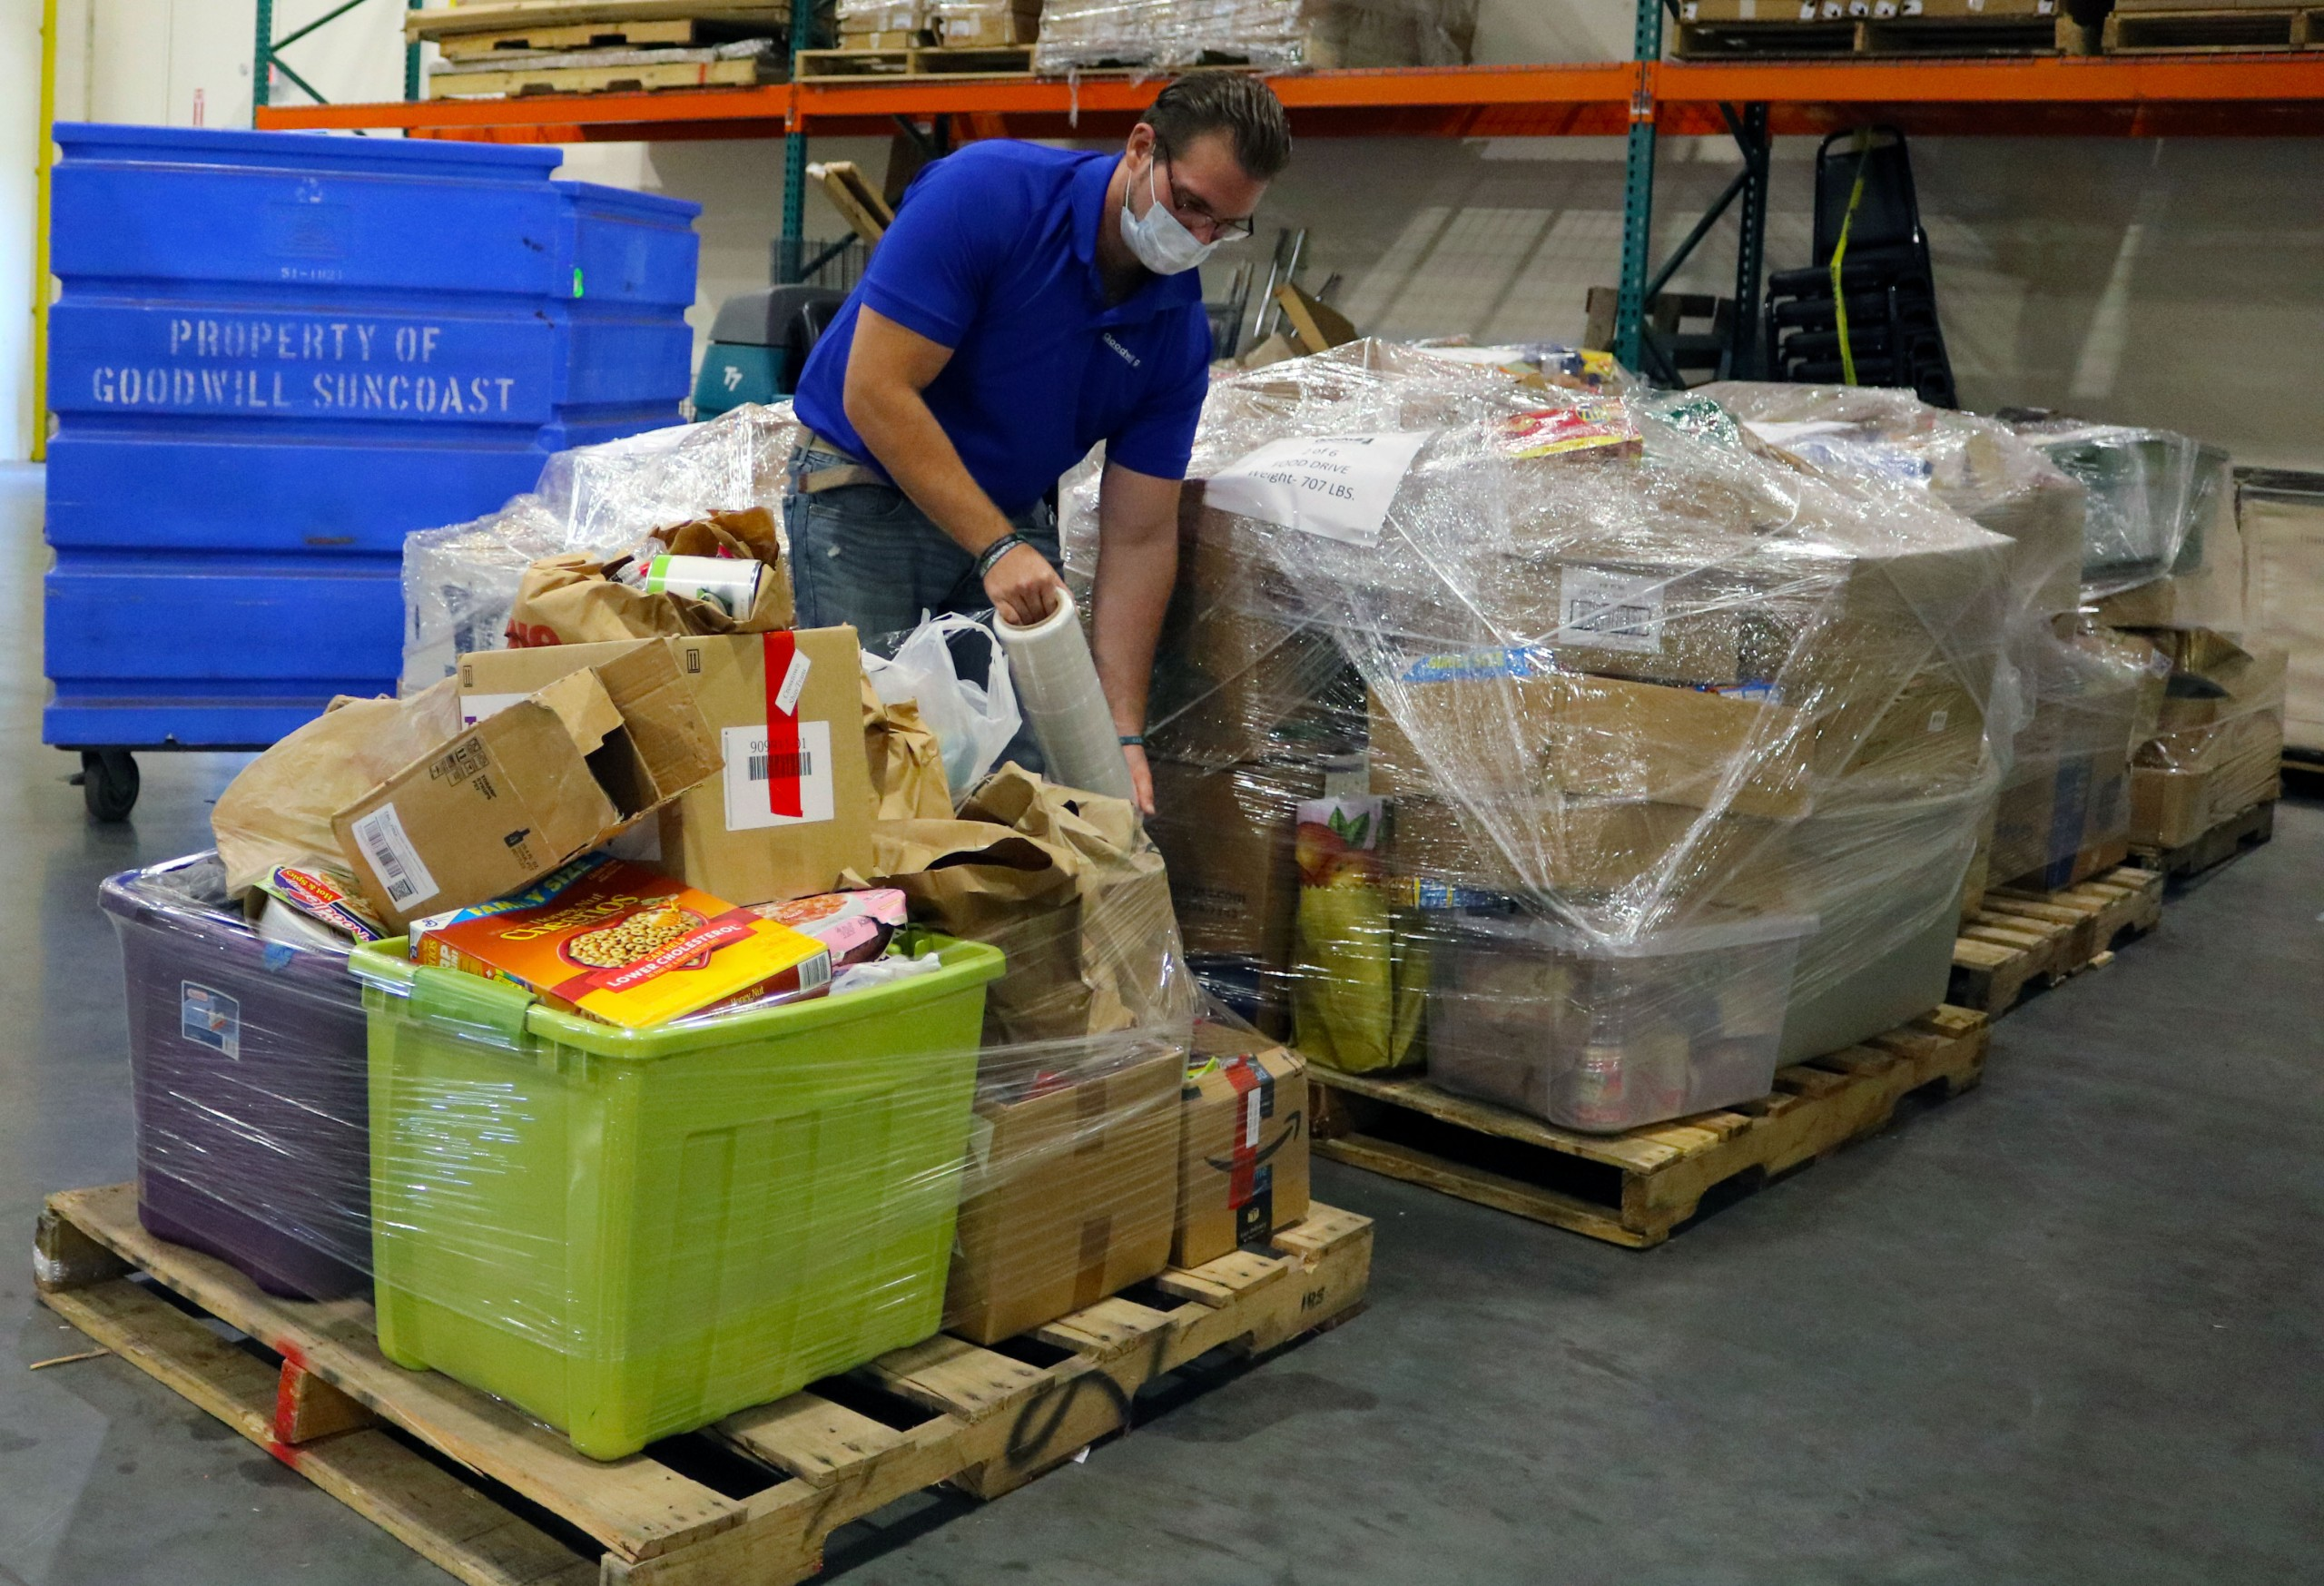 Goodwill staff prepares donated food for pickup